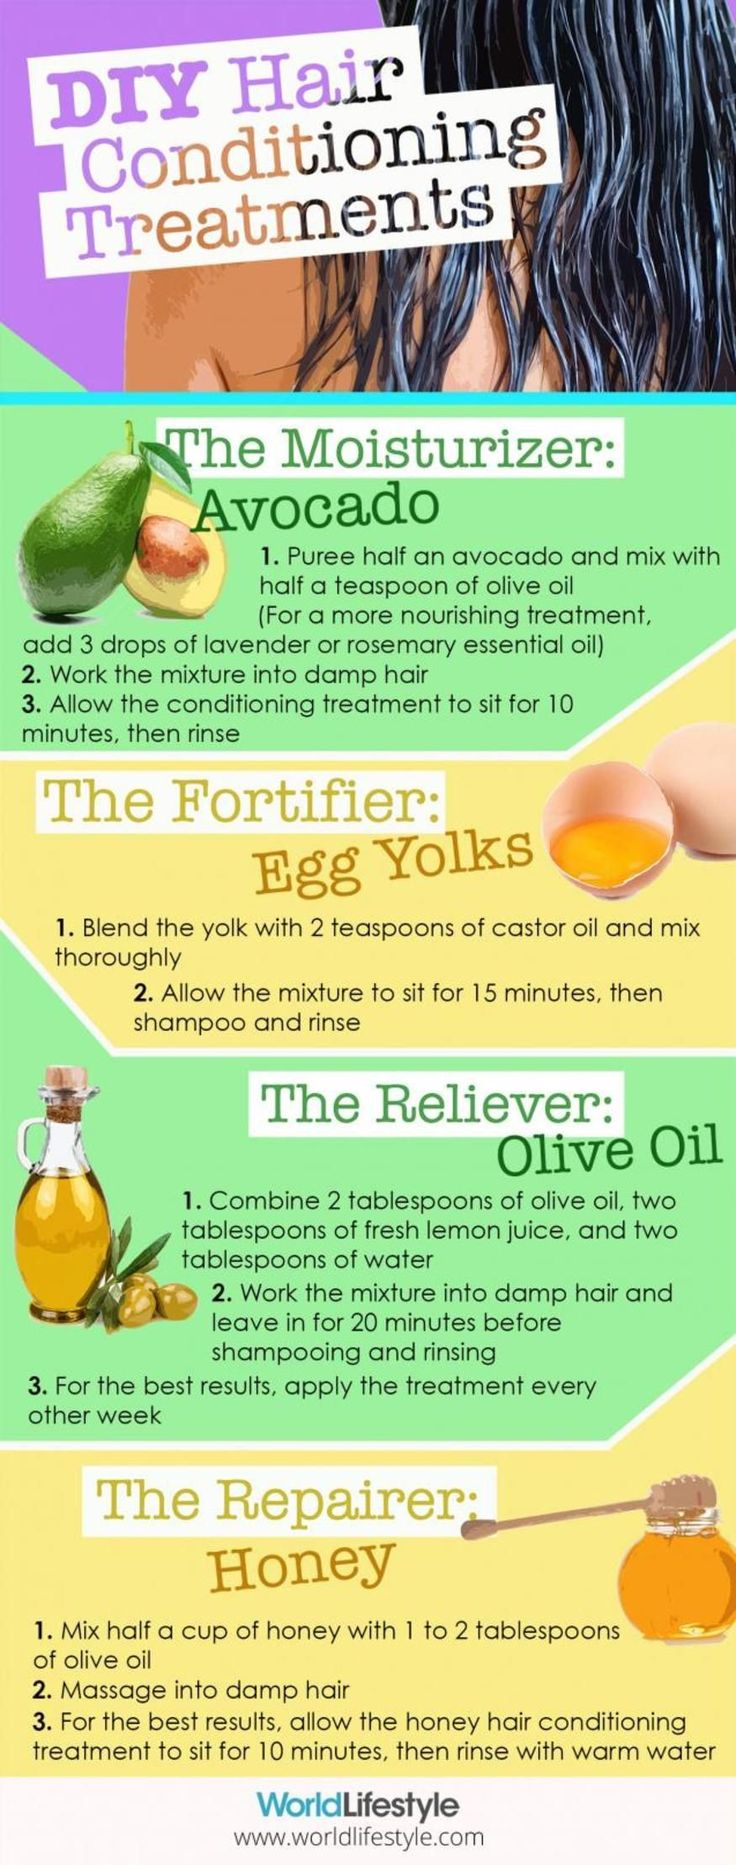 4 DIY All Natural Hair Treatments using ingredients that target common hair trou...